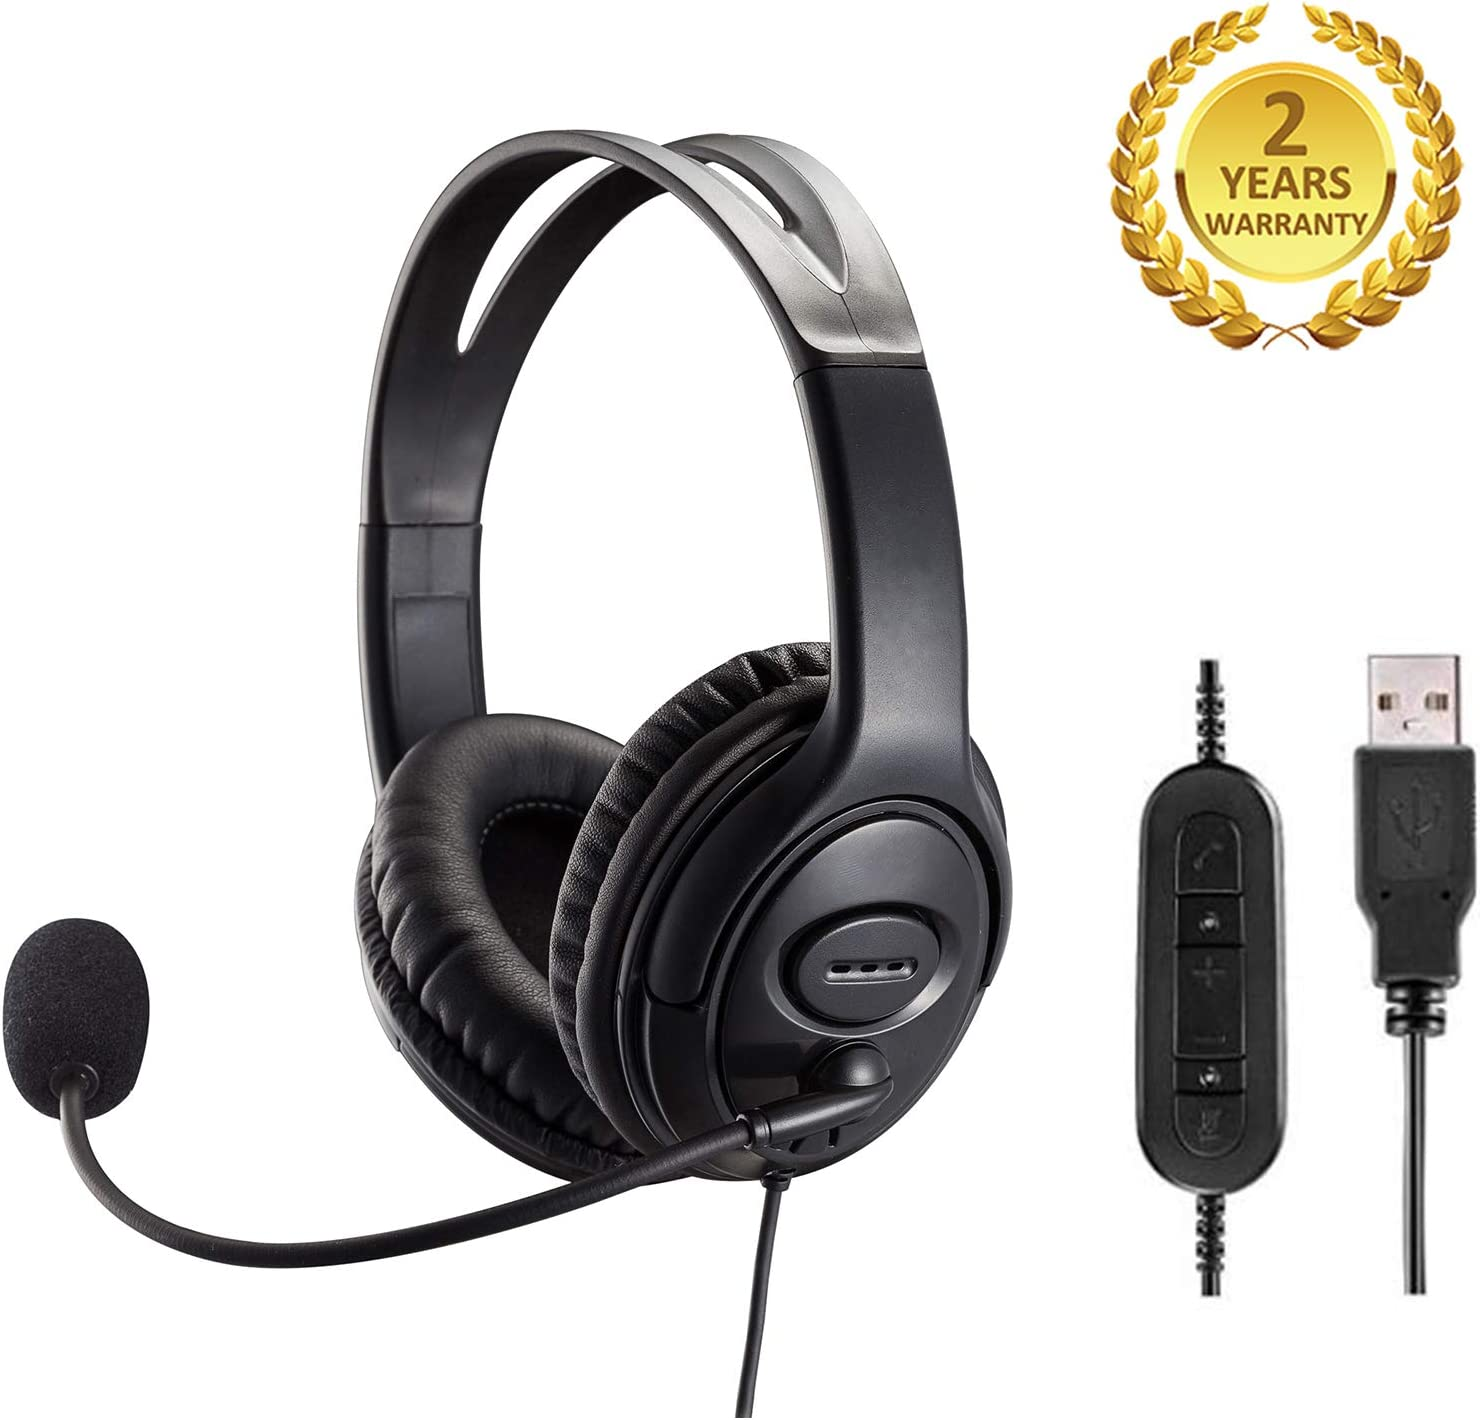 Voice Recognition USB Headset with Noise Cancelling Microphone